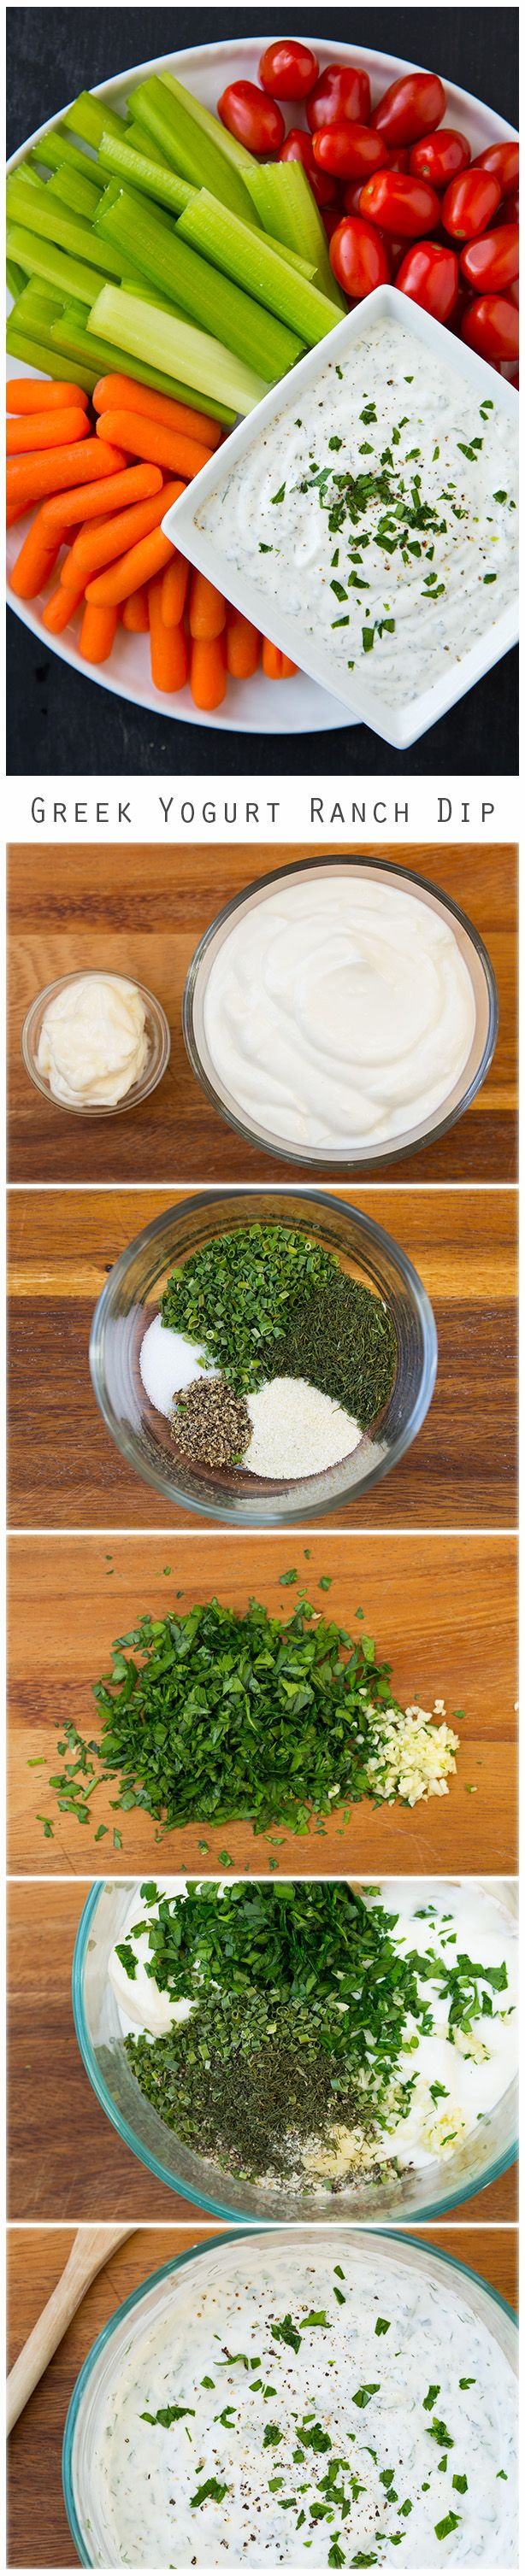 Lighter Greek Yogurt Ranch Dip - this is much lighter than a ranch dip but tastes equally as good if not better! It's my new favorite veggie dip!! I seriously could not stop eating it.